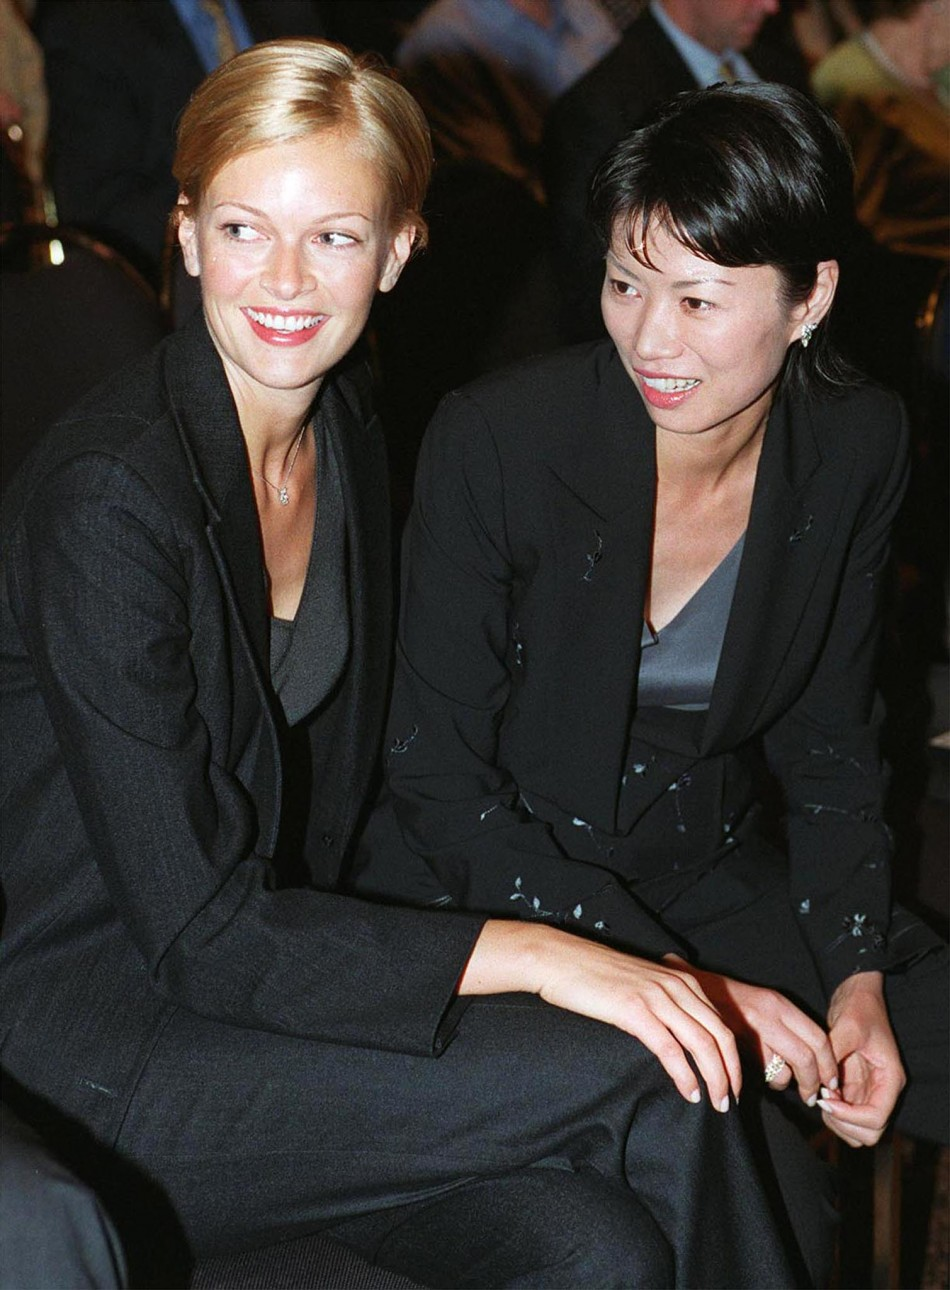 Wendi Deng (R), wife of News Corp Limited Chairman [Rupert] Murdoch, talks with Sarah O'Hare,